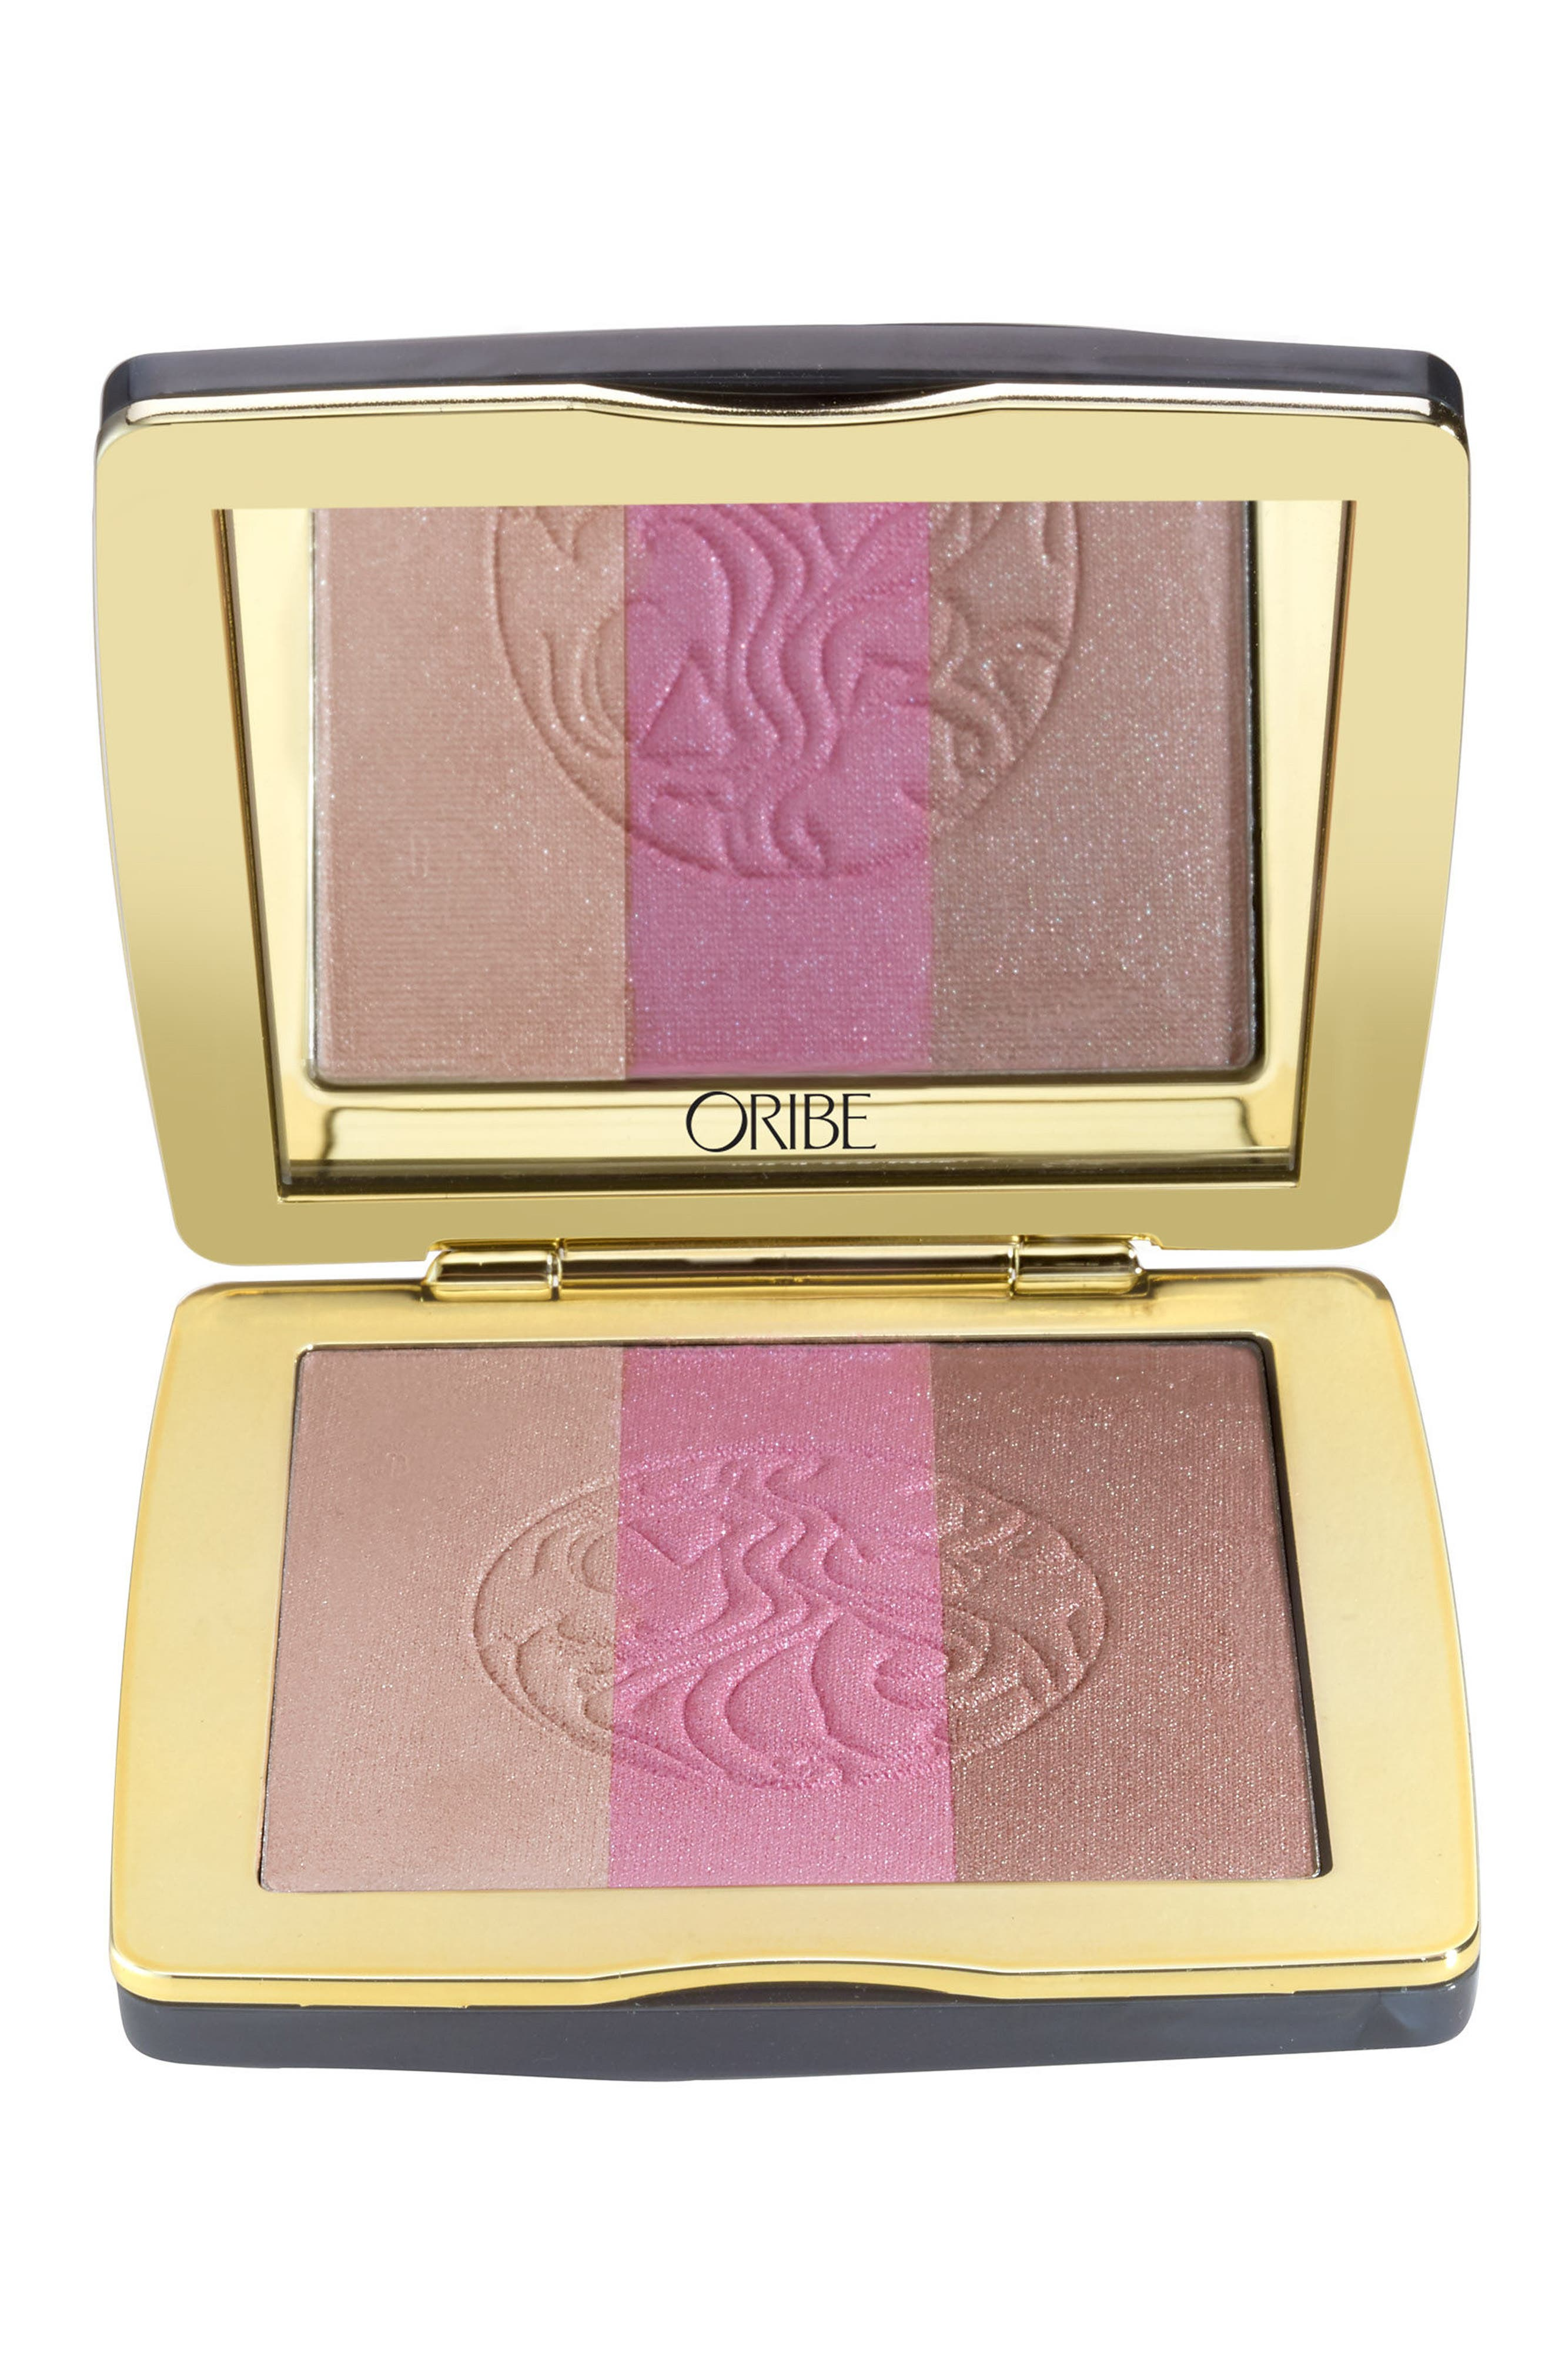 Main Image - SPACE.NK.apothecary Oribe Illuminating Face Palette